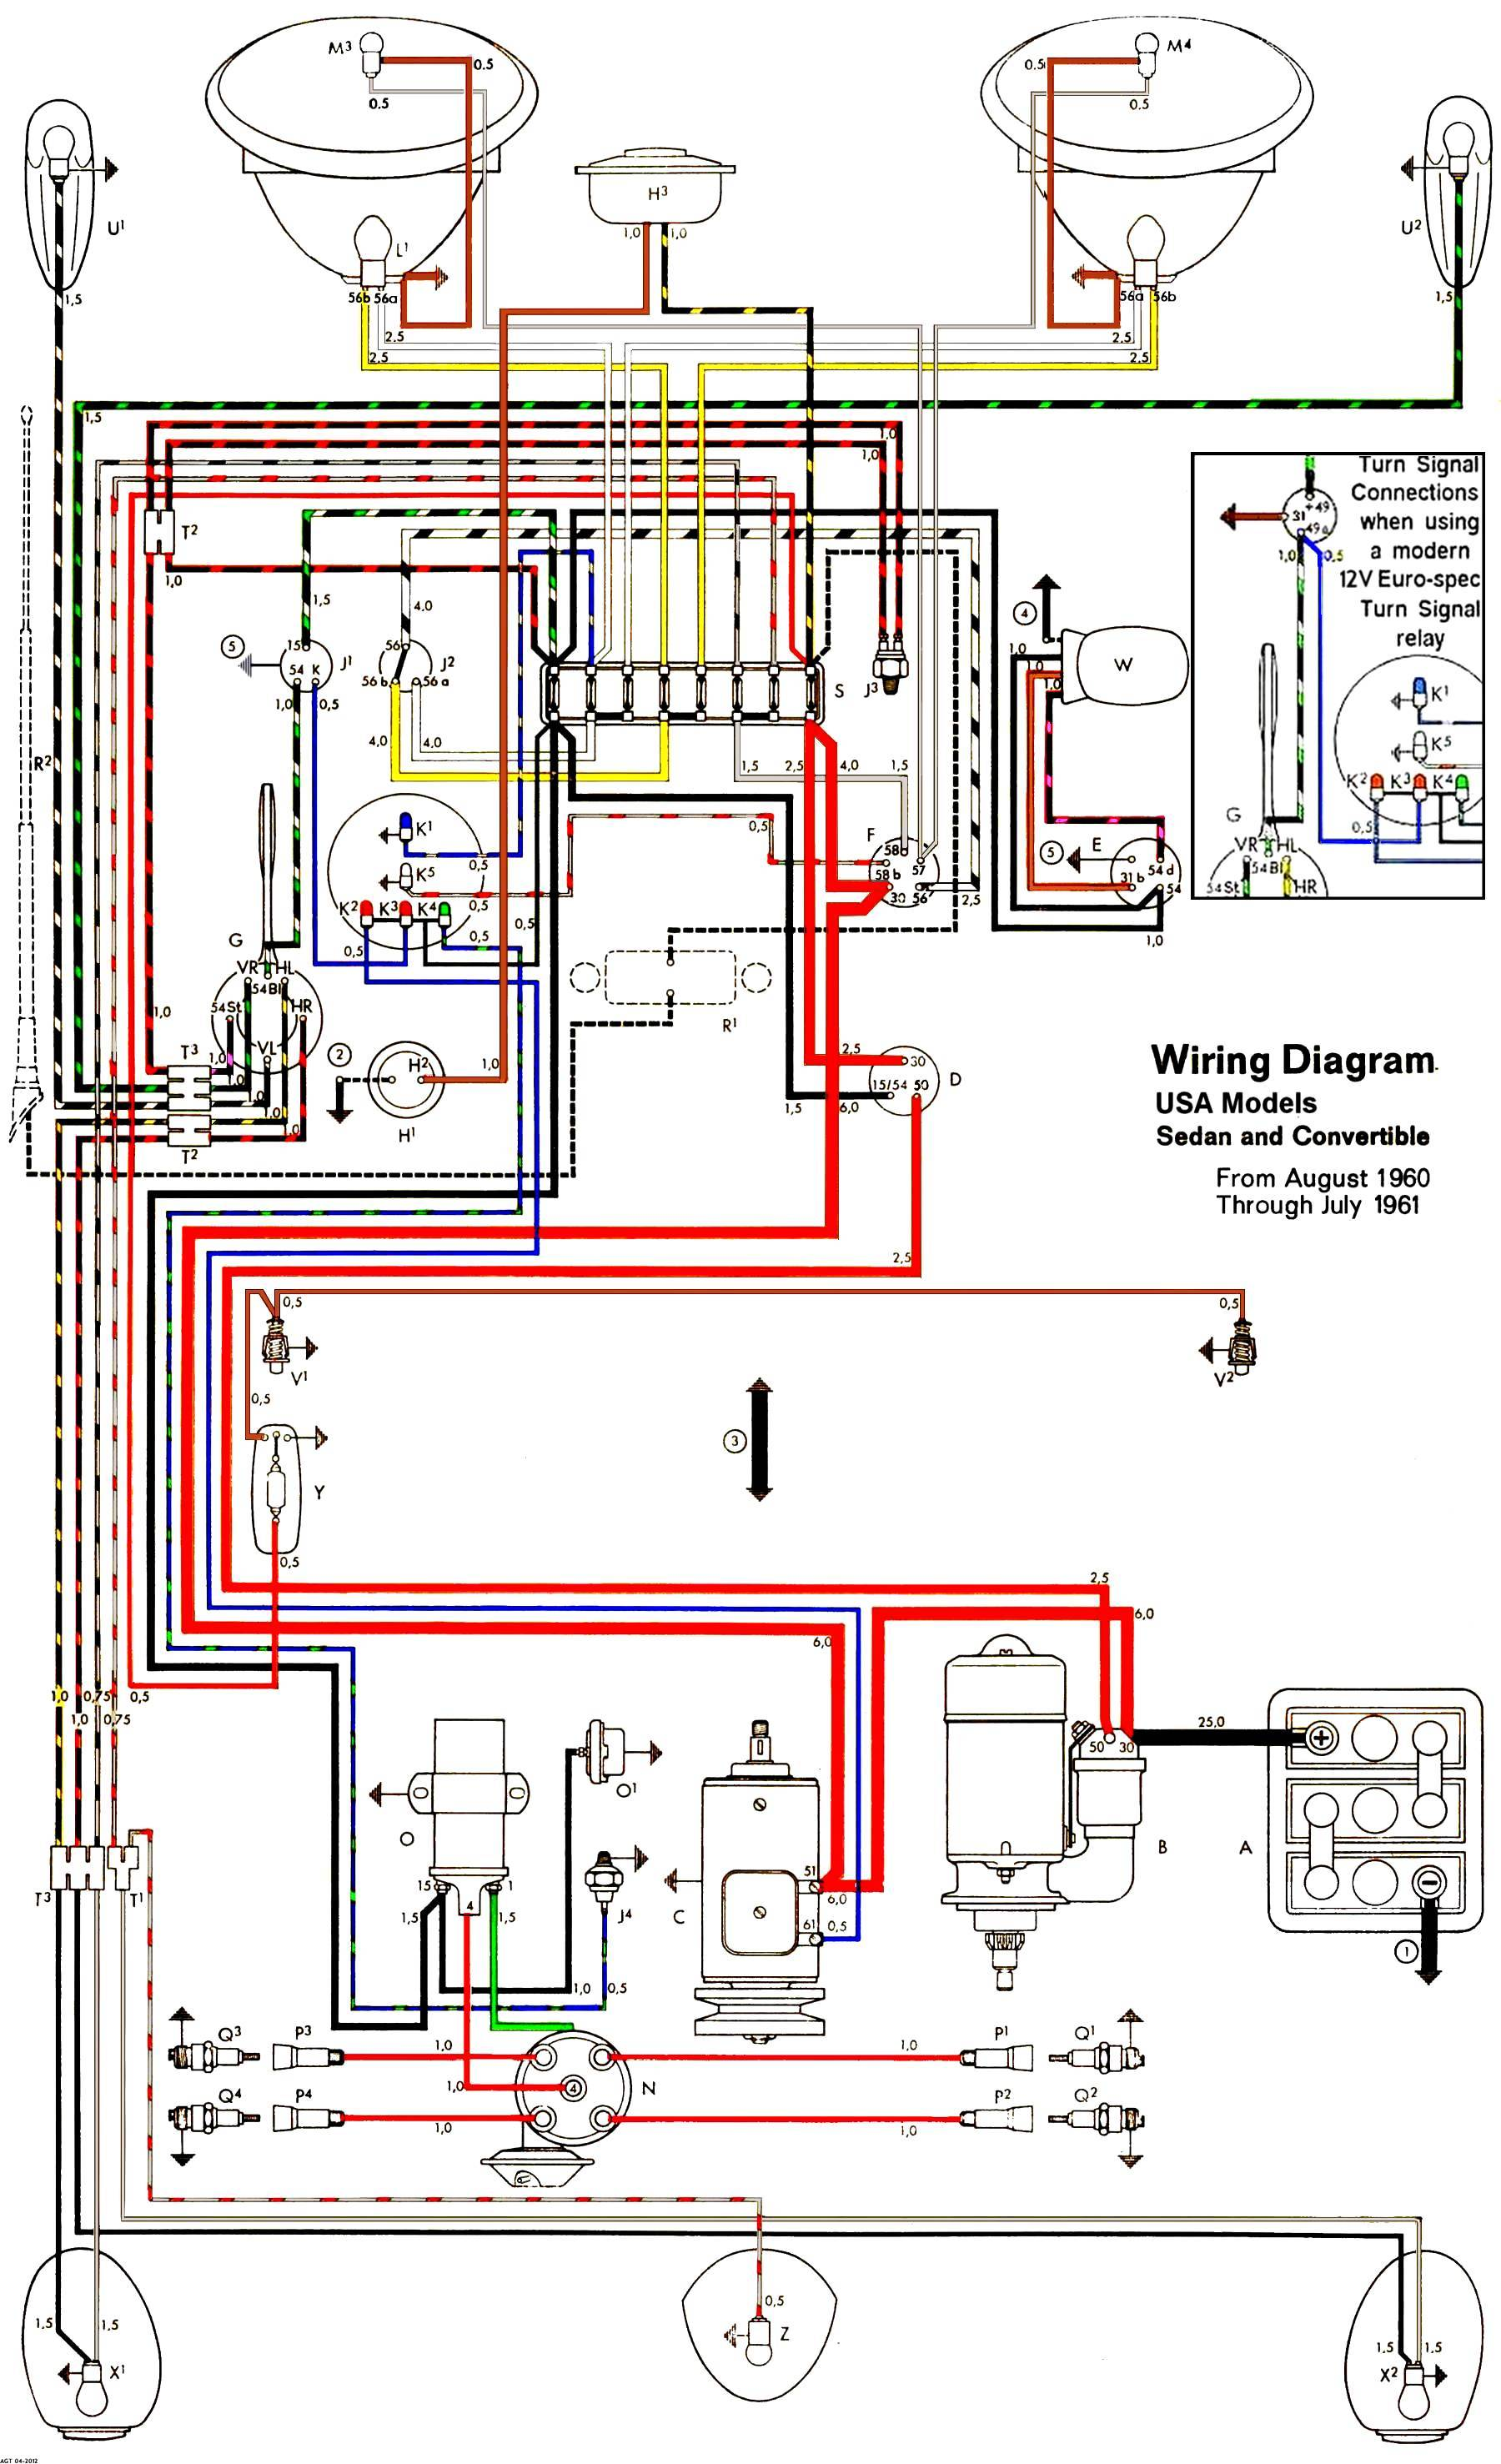 Generous Pit Bike Stator Wiring Tiny Bulldog Car Alarm Shaped How To Rewire An Electric Guitar Les Paul 3 Pickup Wiring Diagram Youthful Search Bbb SoftTwo Humbuckers One Volume One Tone 100  Ideas Wiring Diagram Zig Unit On Www.bestcoloringxmas